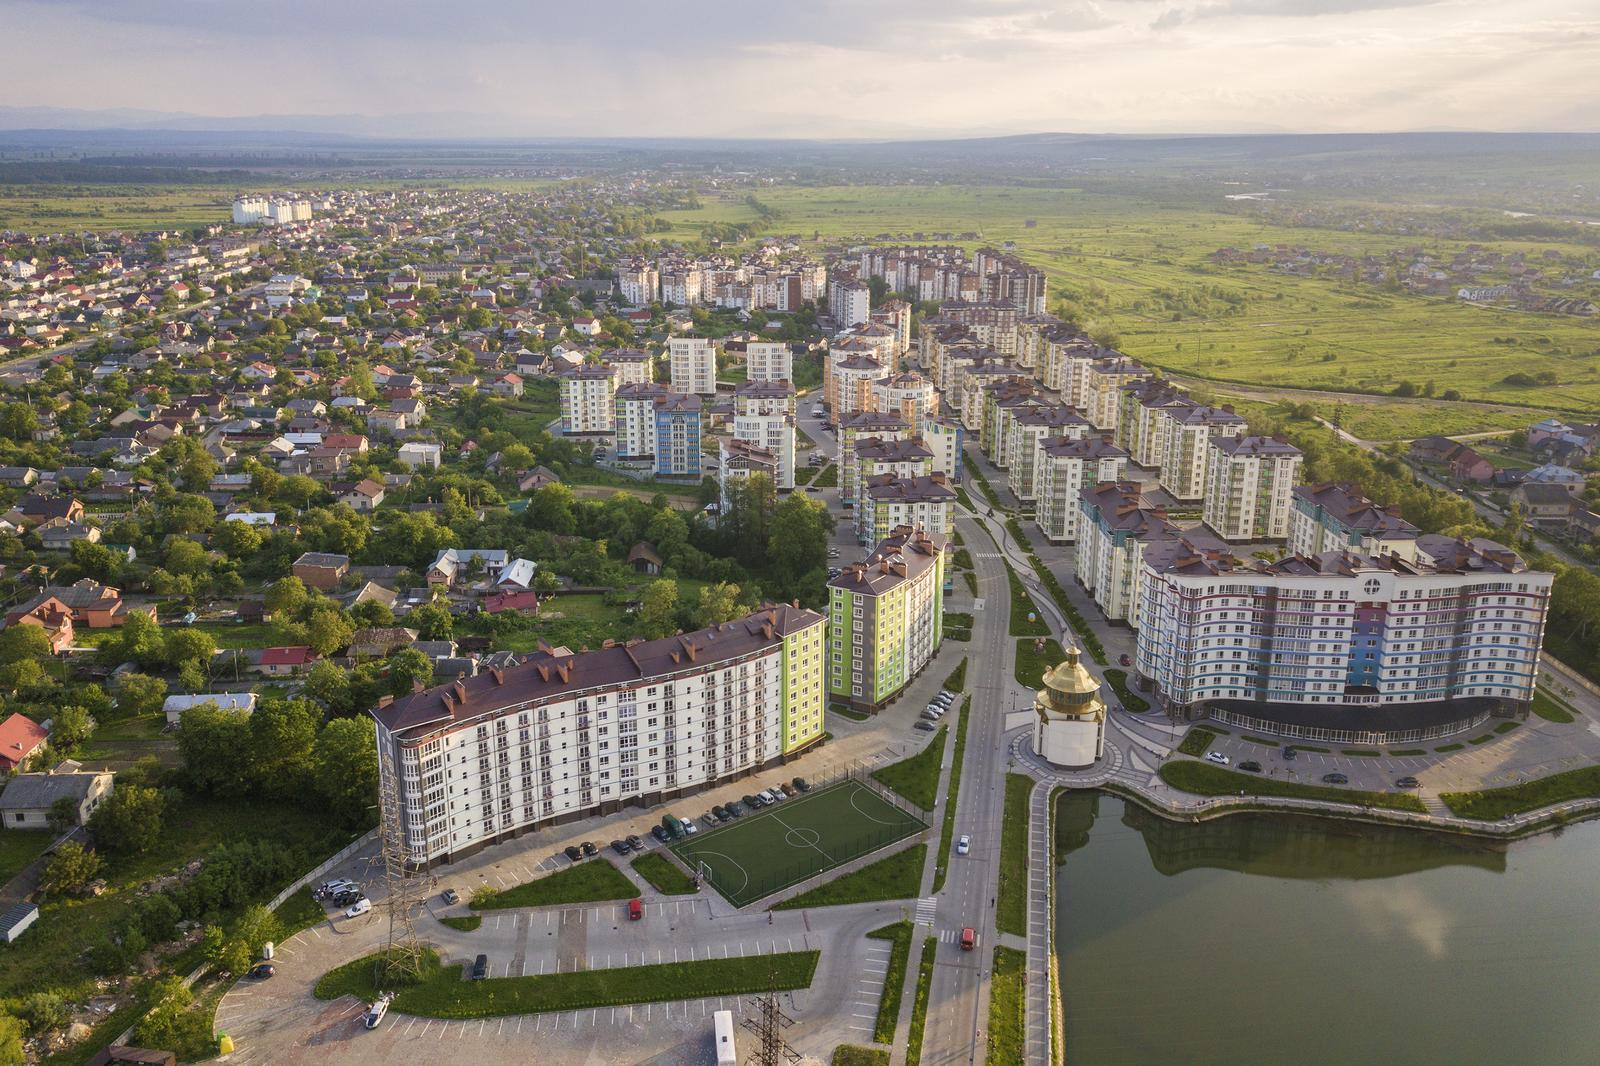 Rental and operating of own or leased real estate in Tallinn